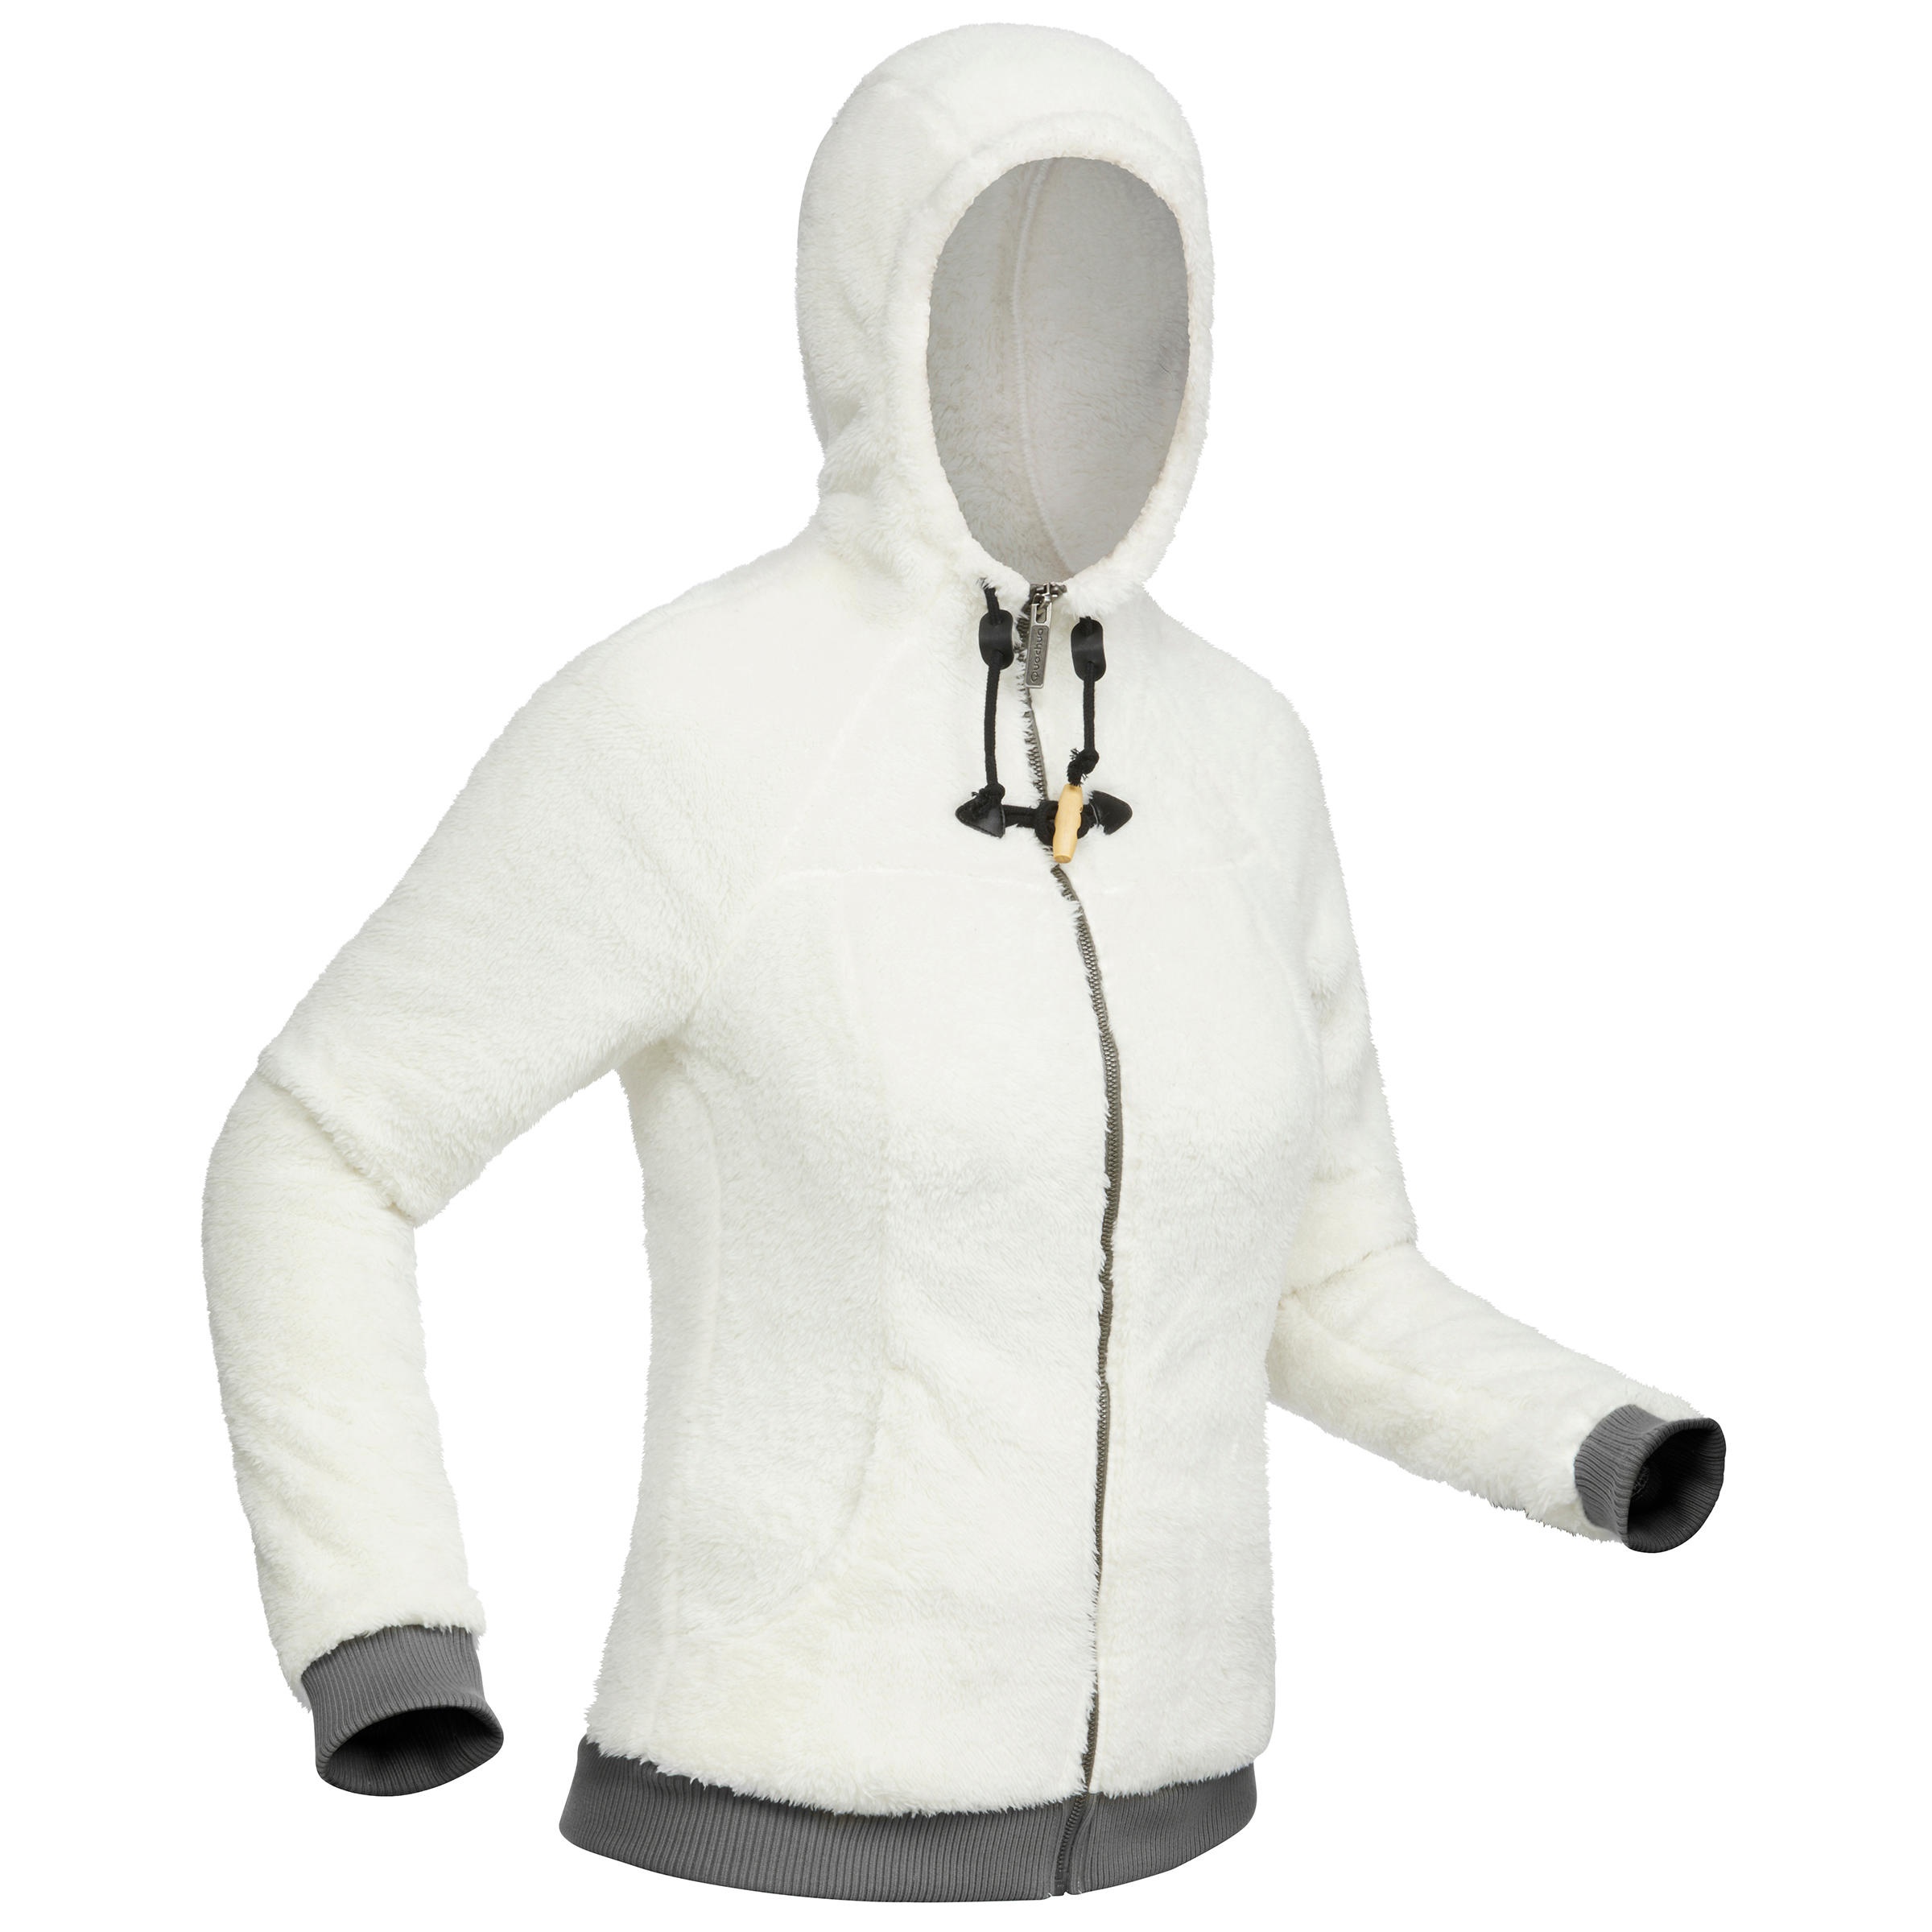 SH100 Ultra-Warm Women's Snow Hiking Fleece Jacket - White